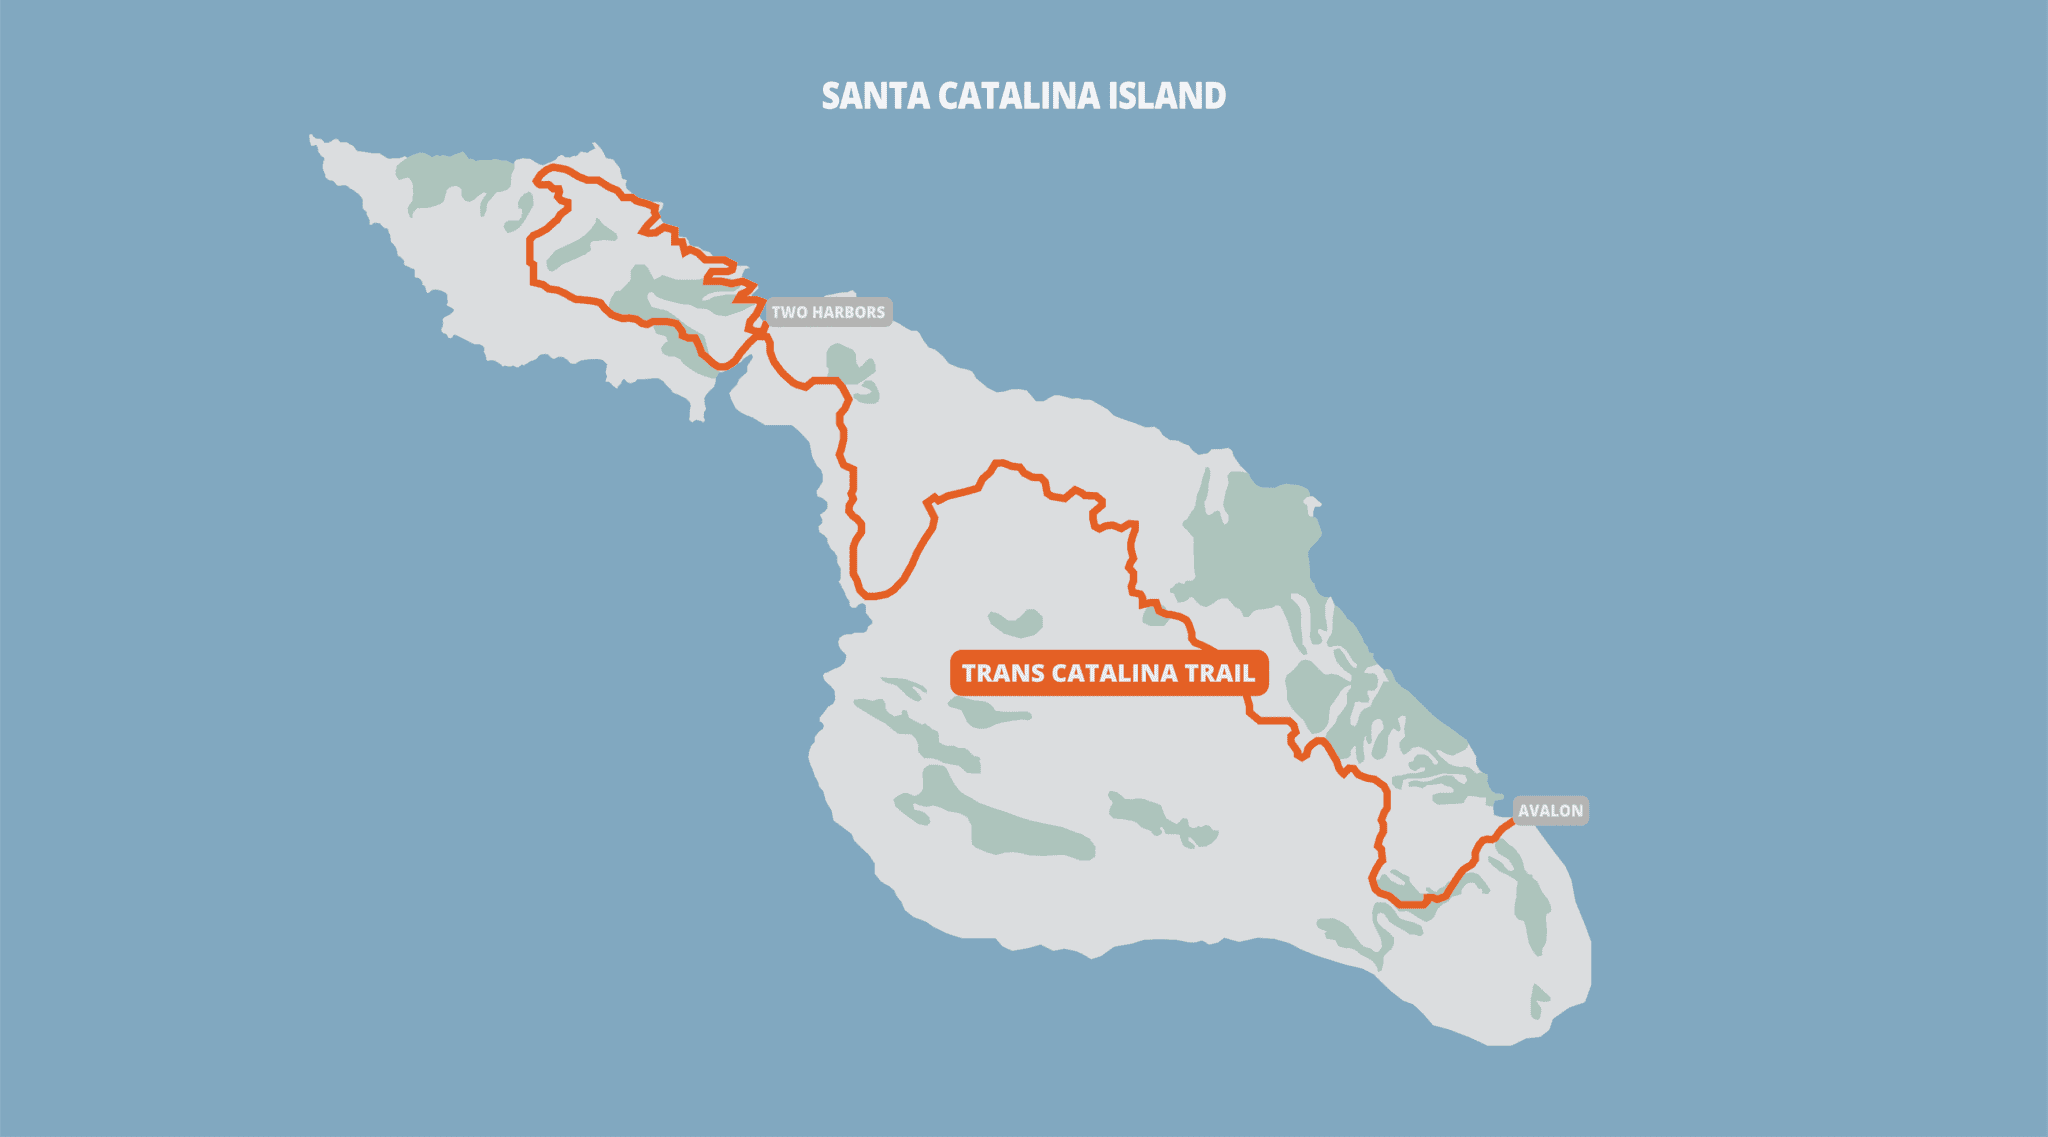 Trans Catalina Trail overlayed on a map of the Catalina Island.